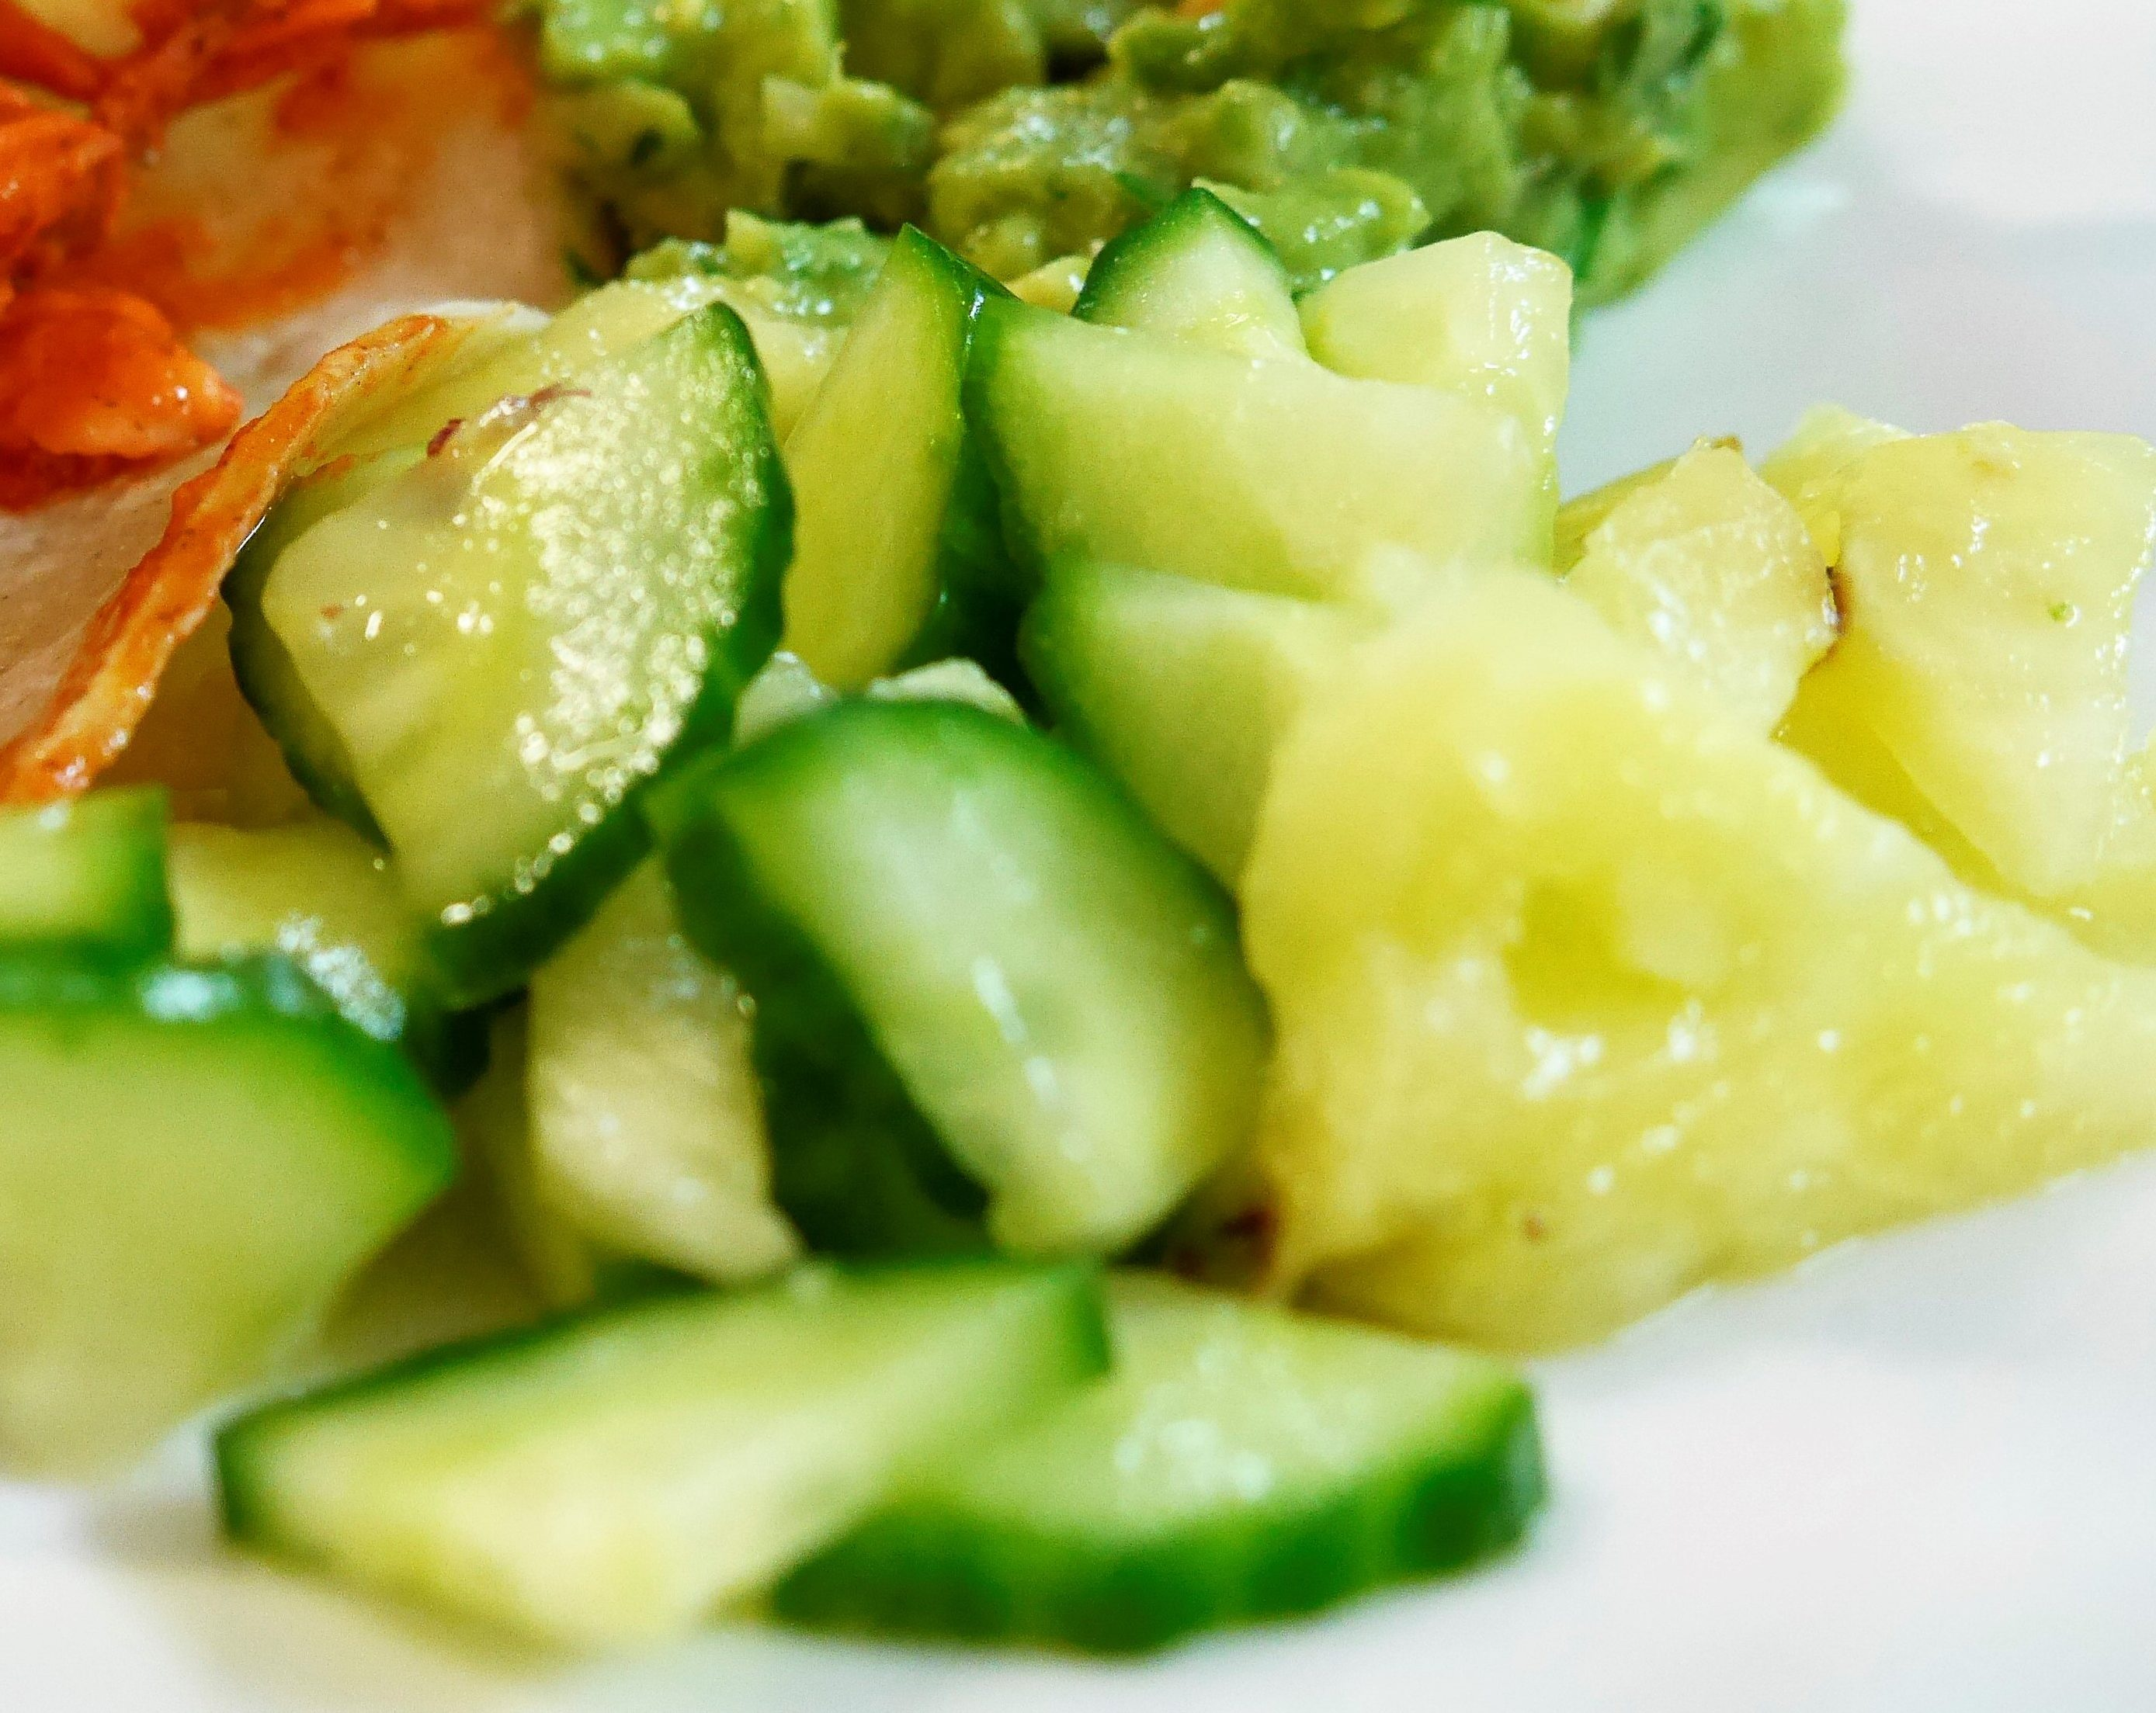 Mexican Cuisine With Yasbenia: Pineapple And Cucumber Salad